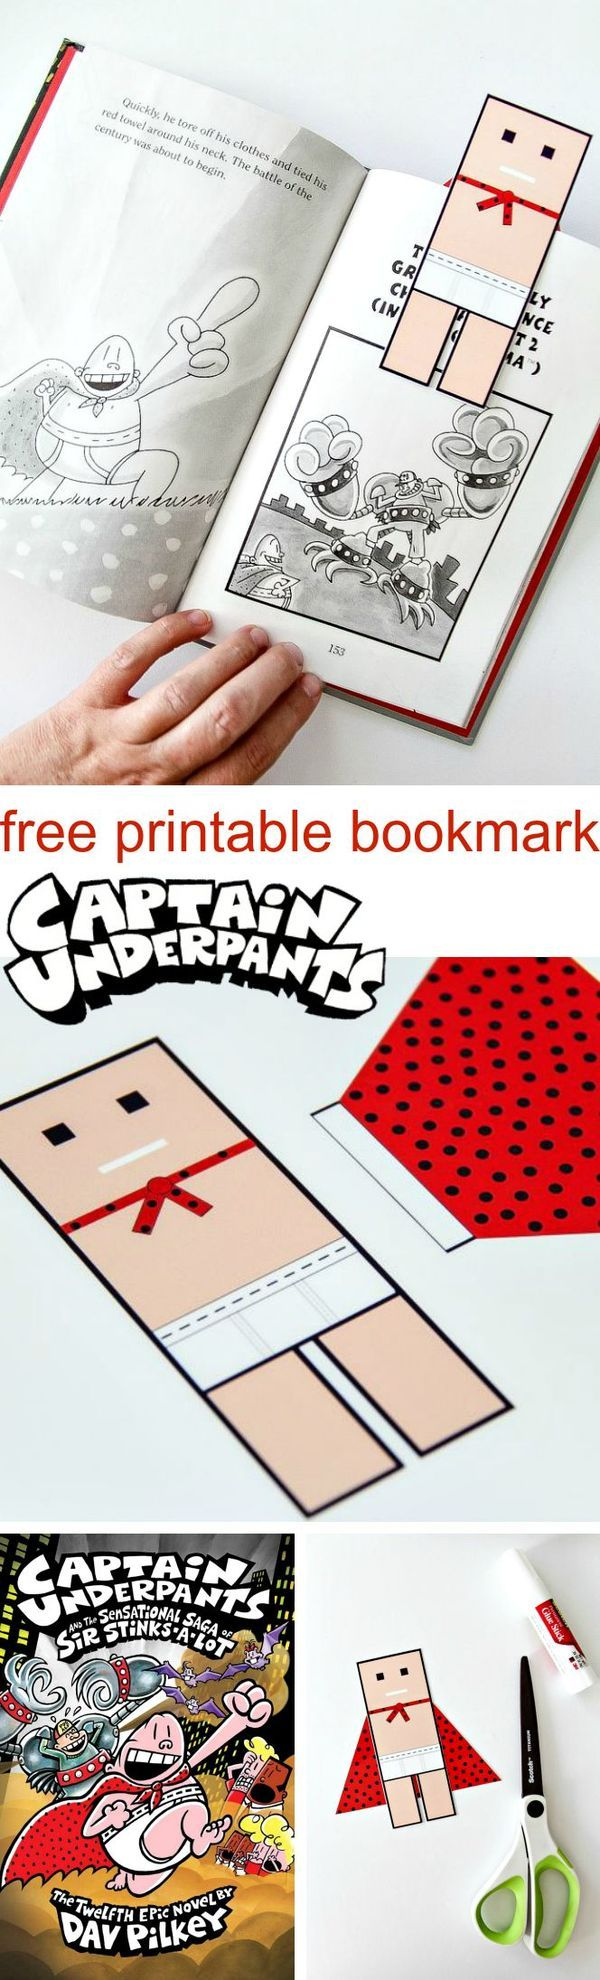 Download and print this FREE Captain Underpants Bookmark. #PilkeyPower #ad